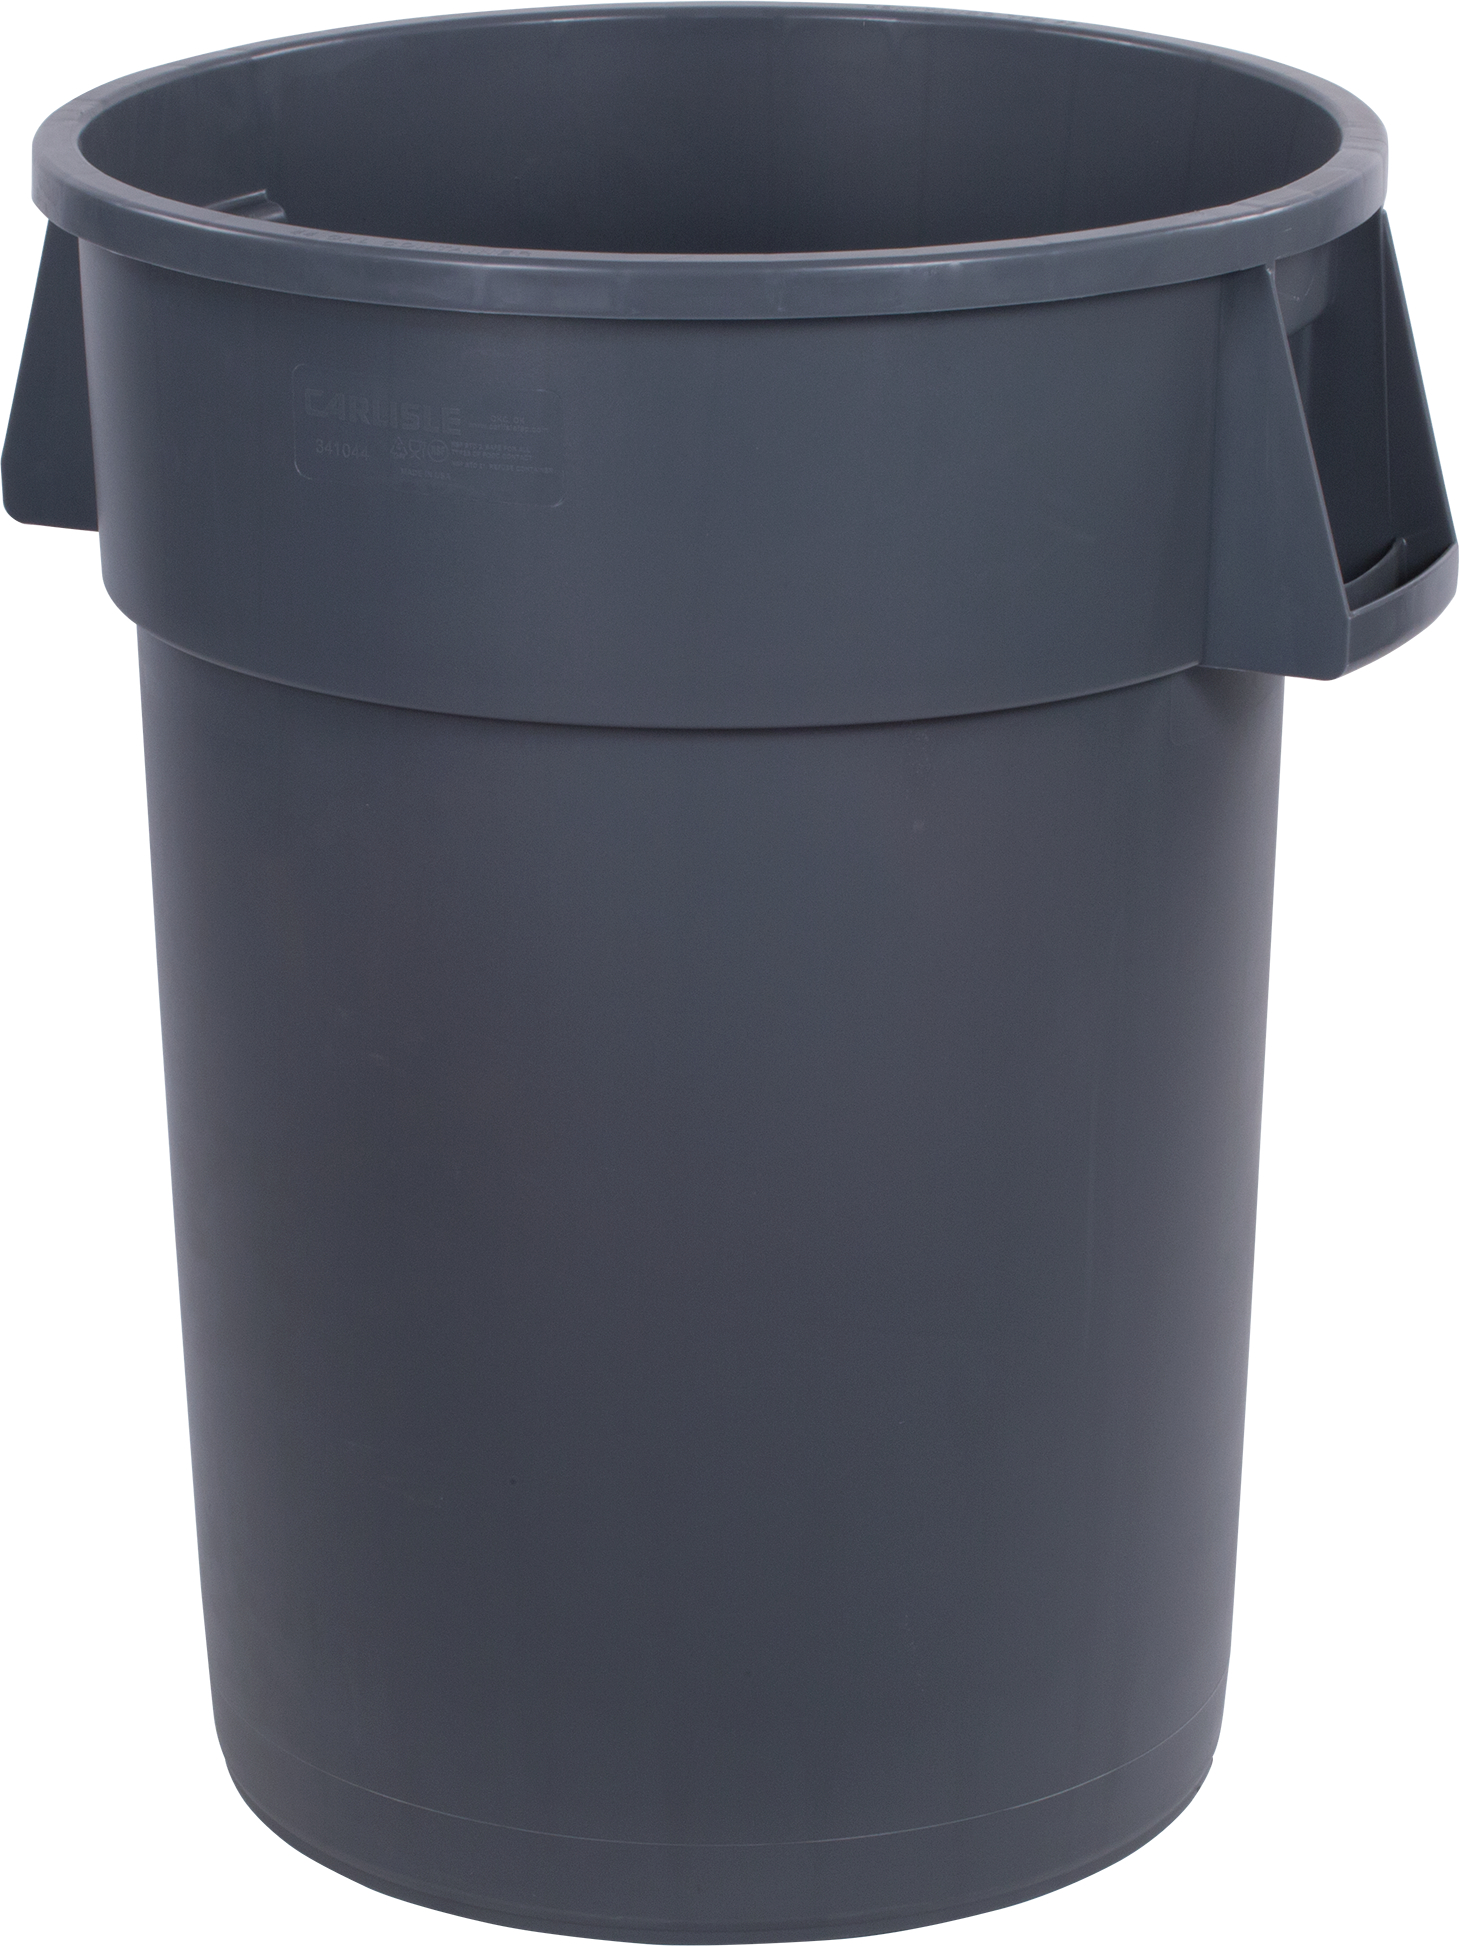 32GAL GRY CONTAINER 4CS BRUTE TRASH ROUND WASTE BIN RECEP